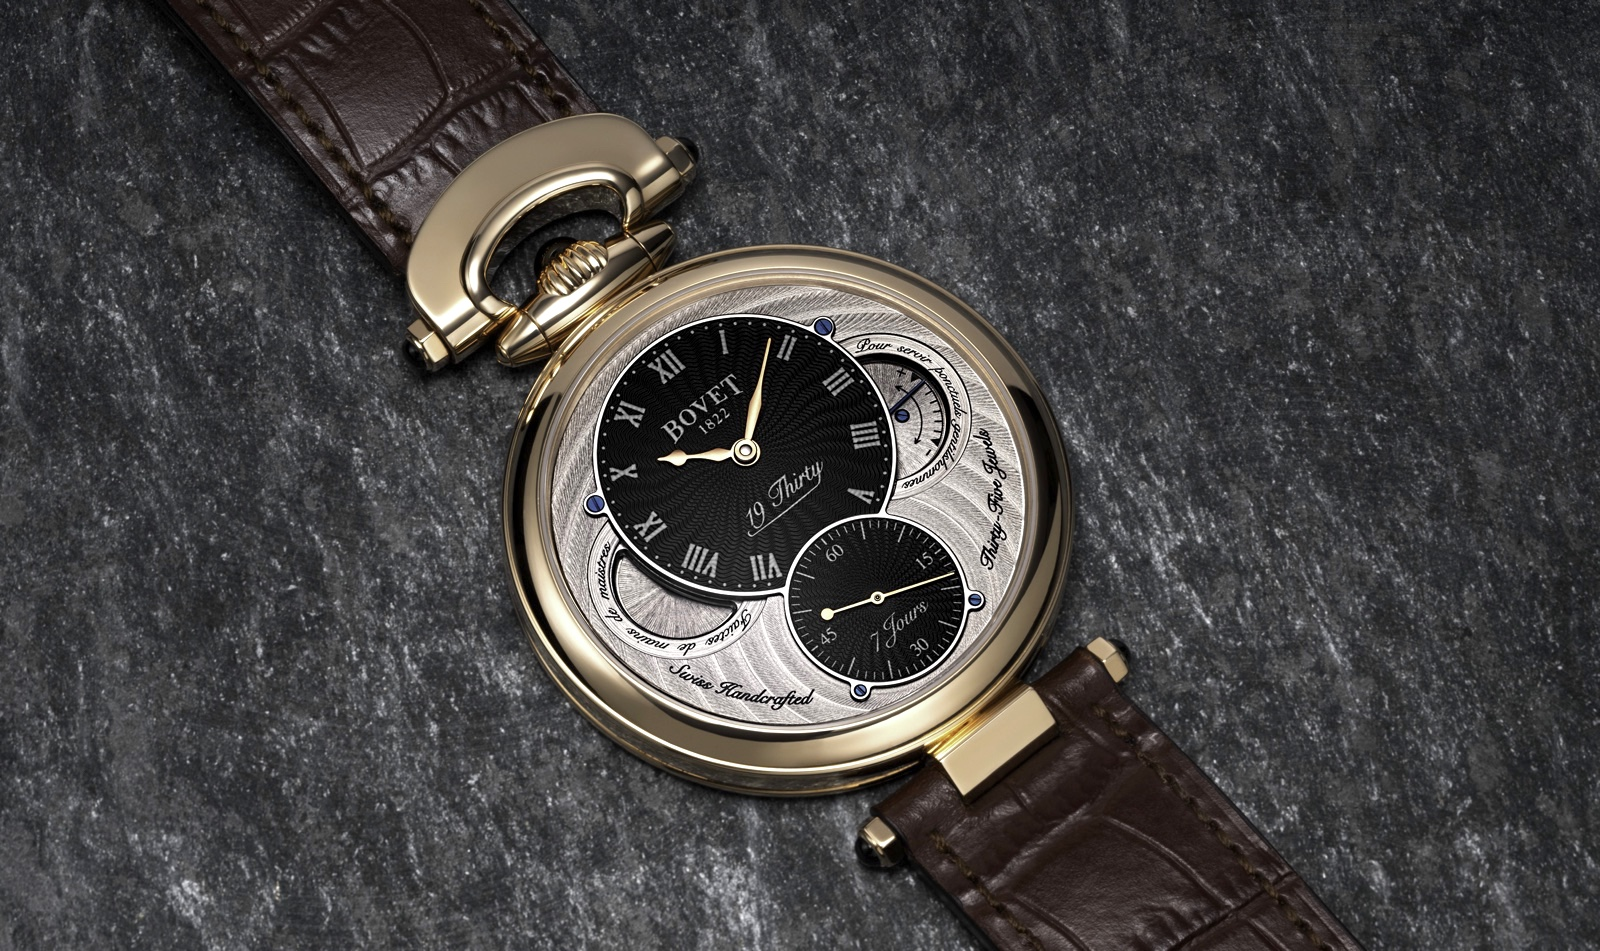 Bovet 19Thirty Fleurier 2